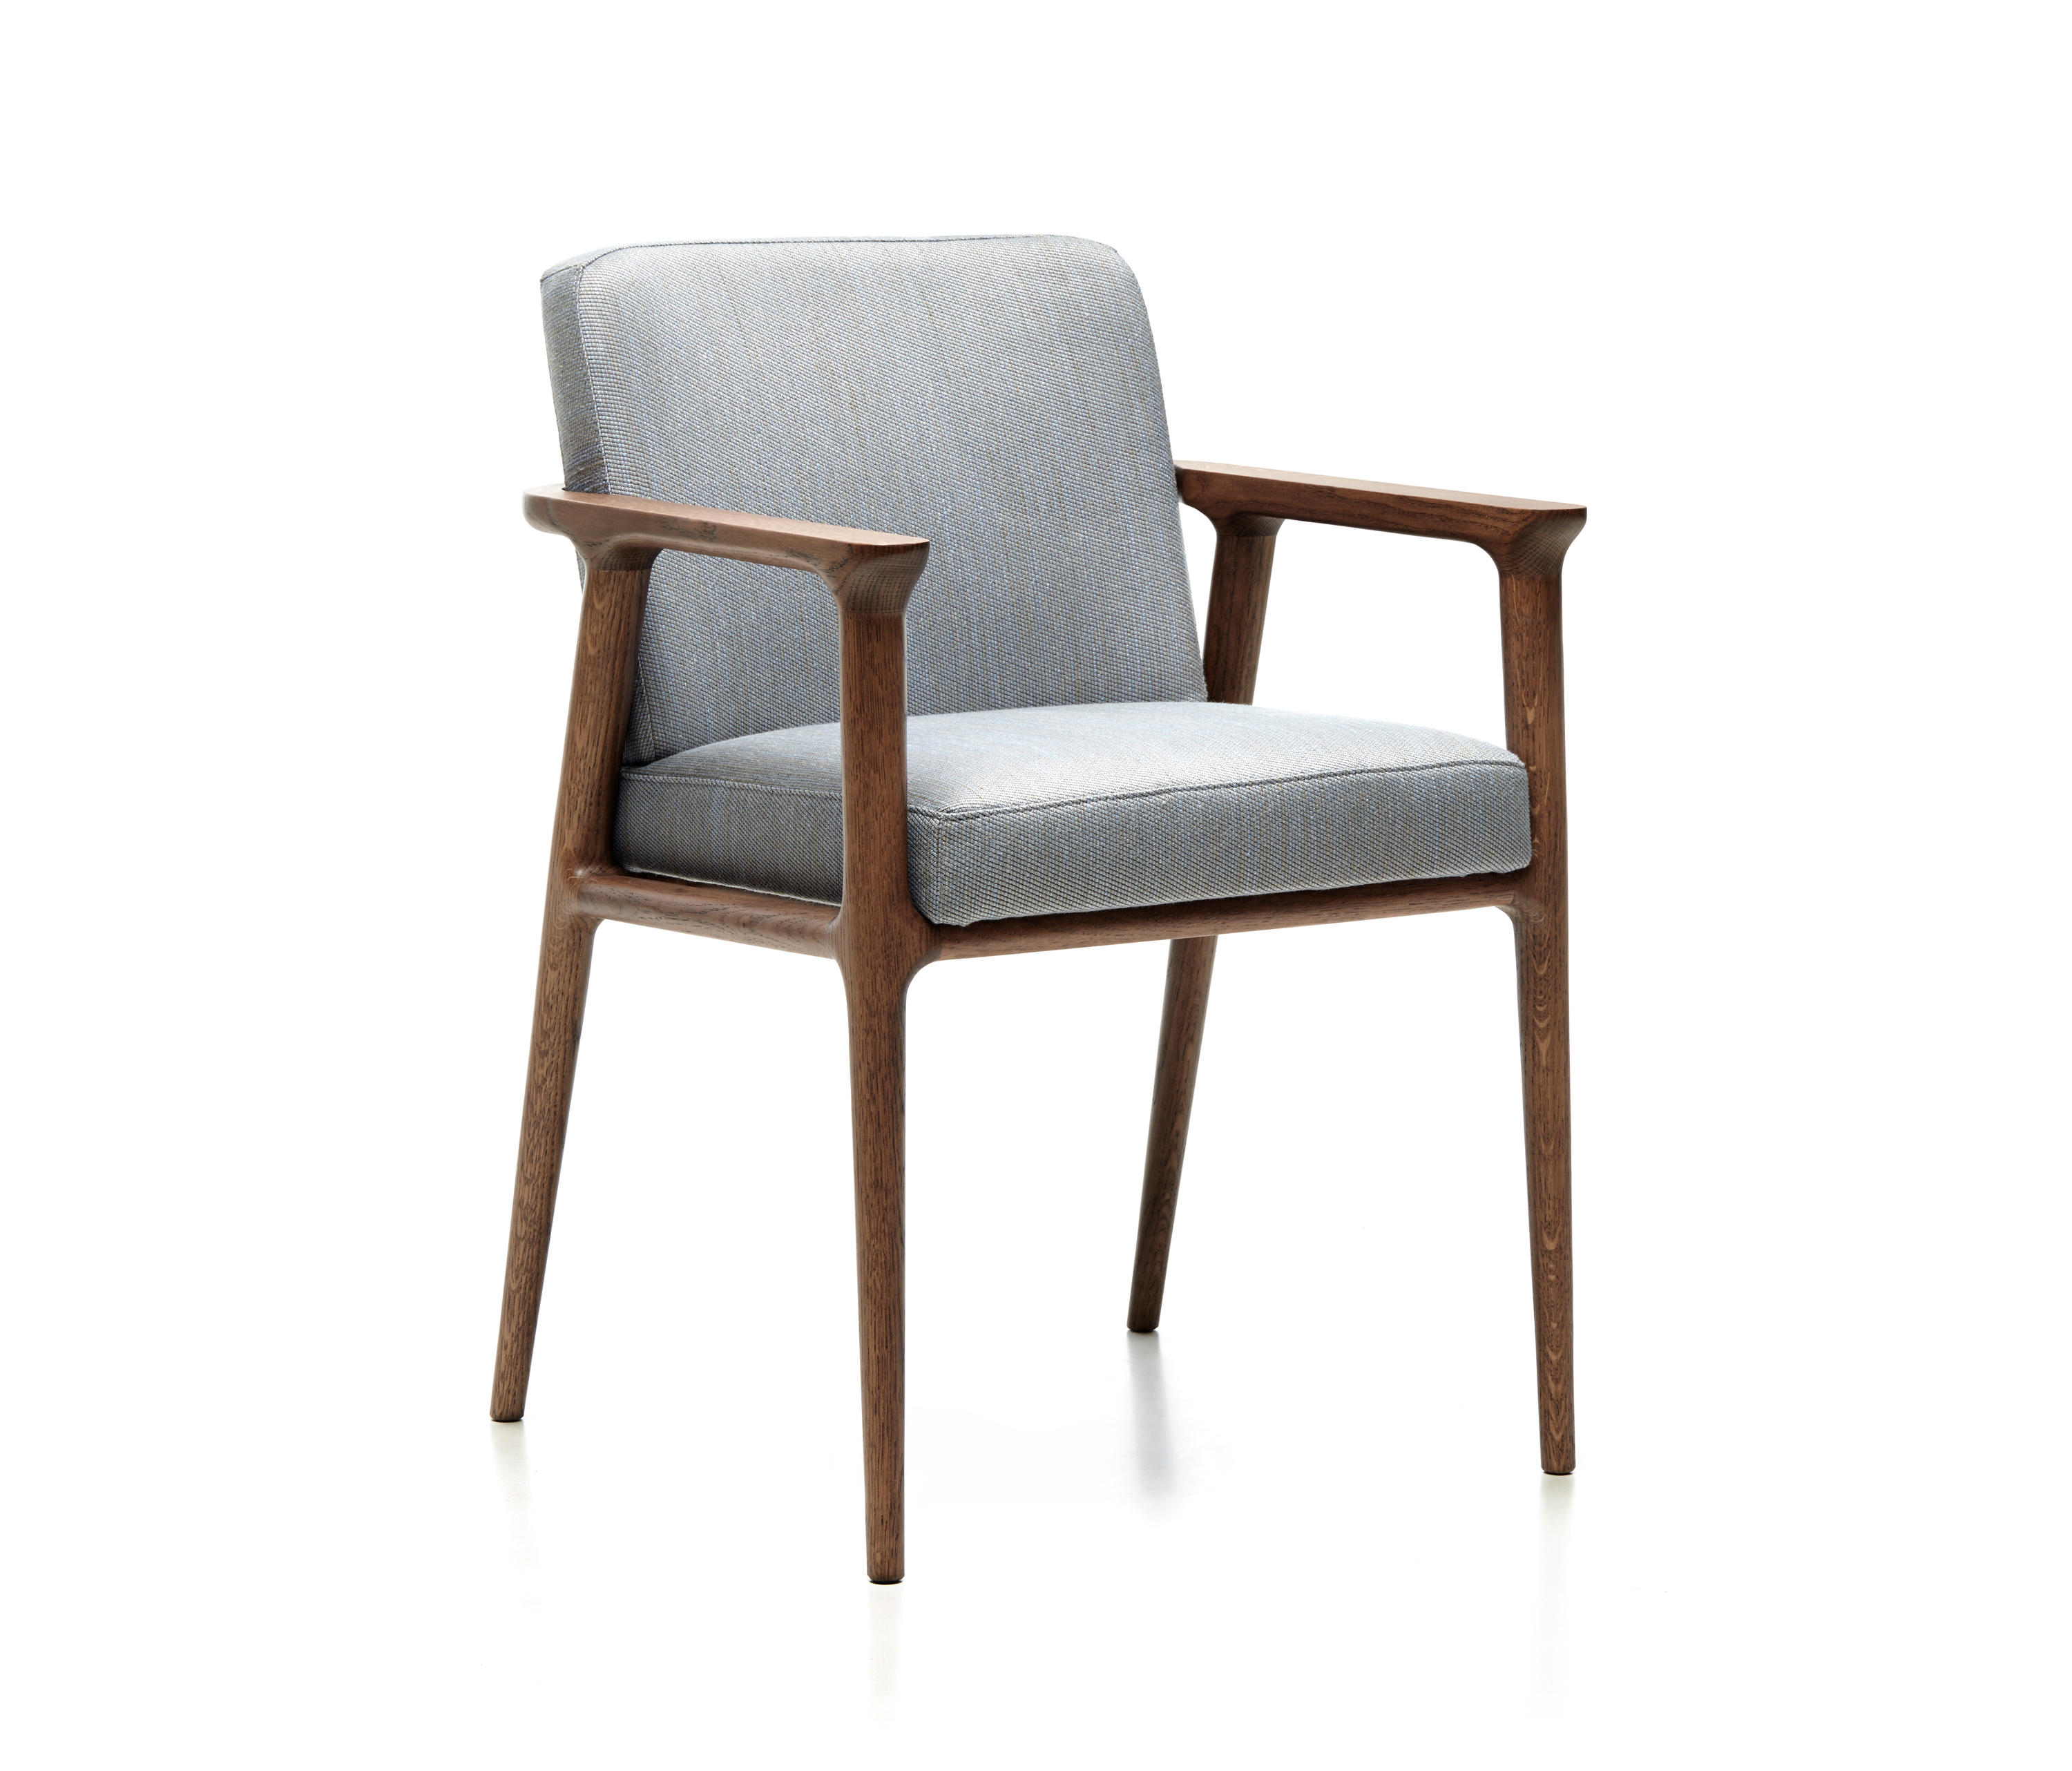 Charming Zio Dining Chair By Moooi | Restaurant Chairs ...